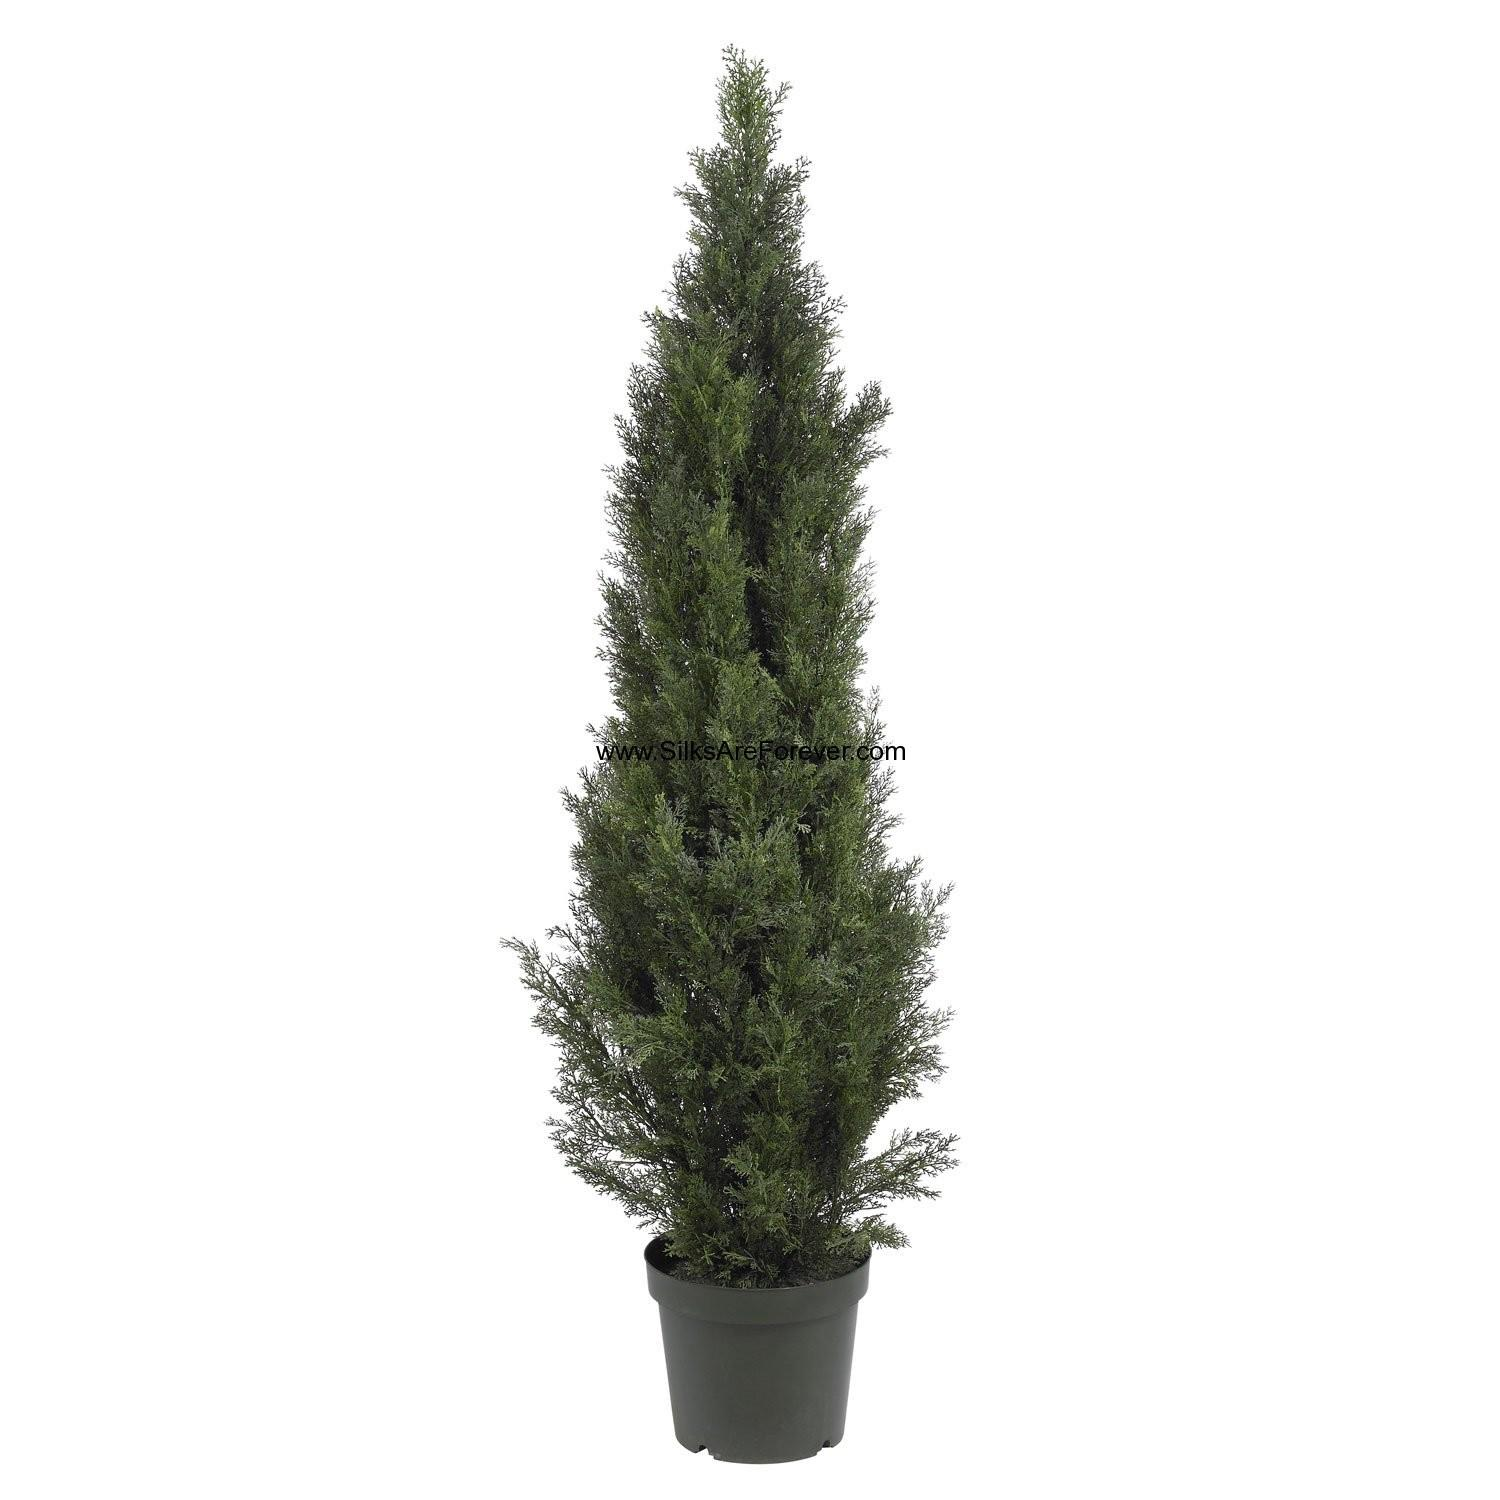 Cedar Cone Shaped Artificial Topiary Tree Pot Indoor